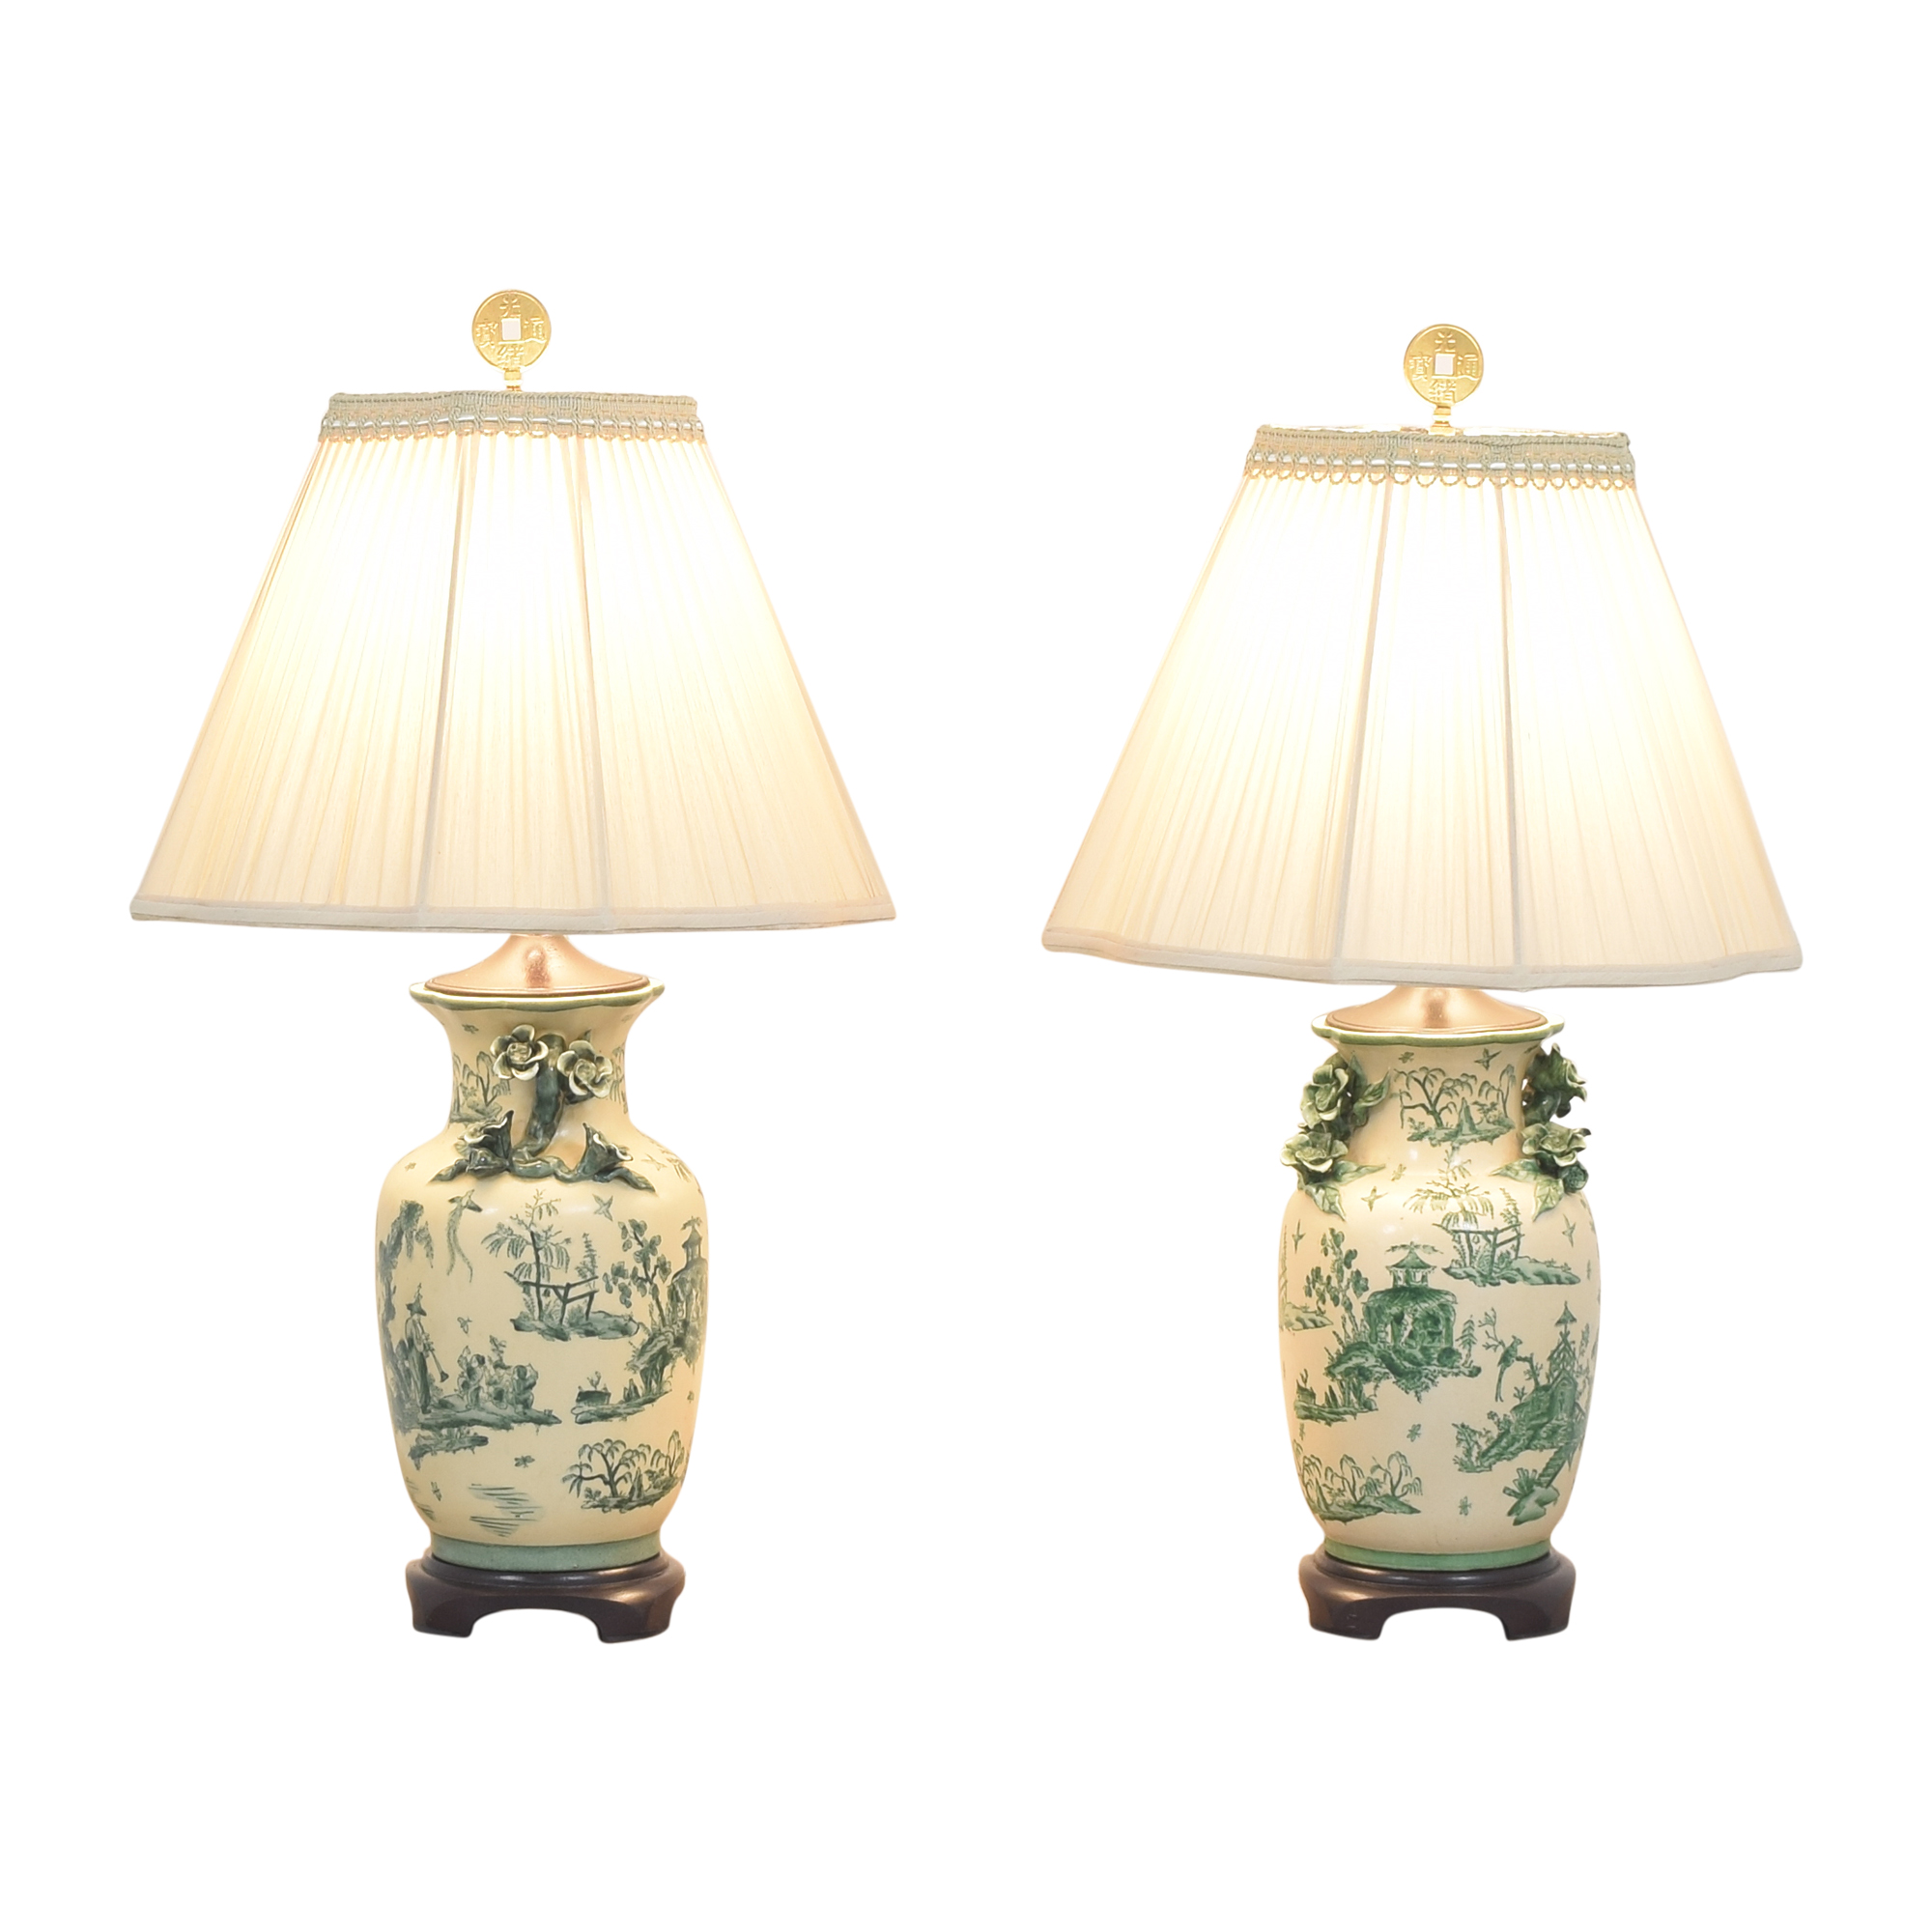 The Bradburn Gallery The Bradburn Gallery Oriental Vase Table Lamps used